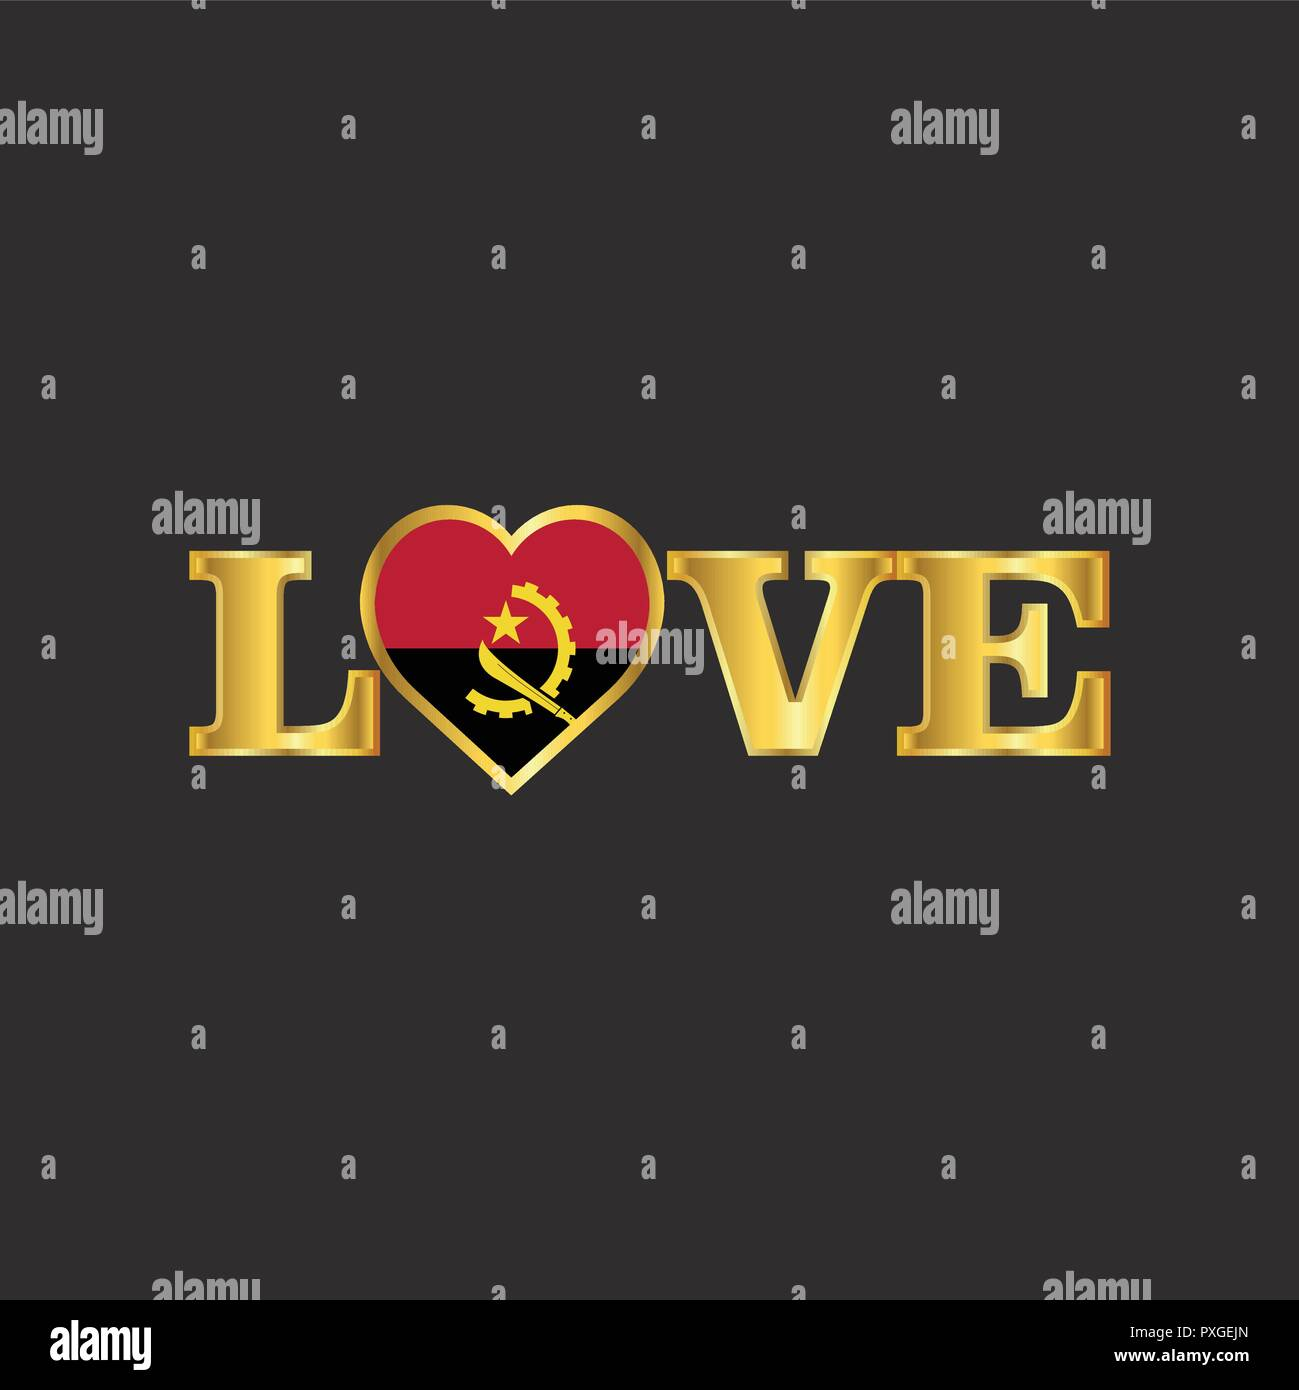 Golden Love typography Angola flag design vector - Stock Image